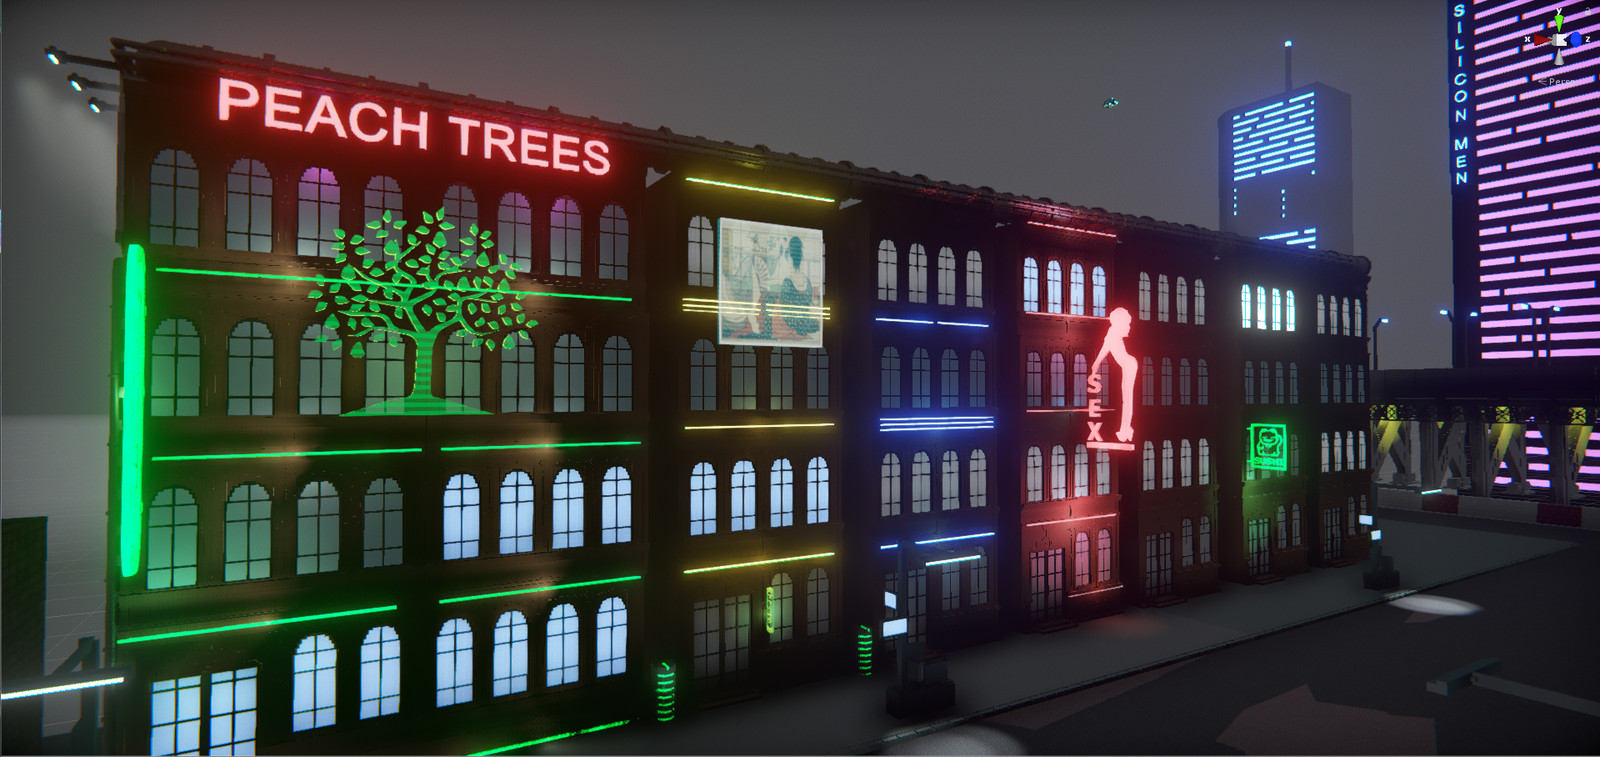 Adding more details: billboard, lights, etc